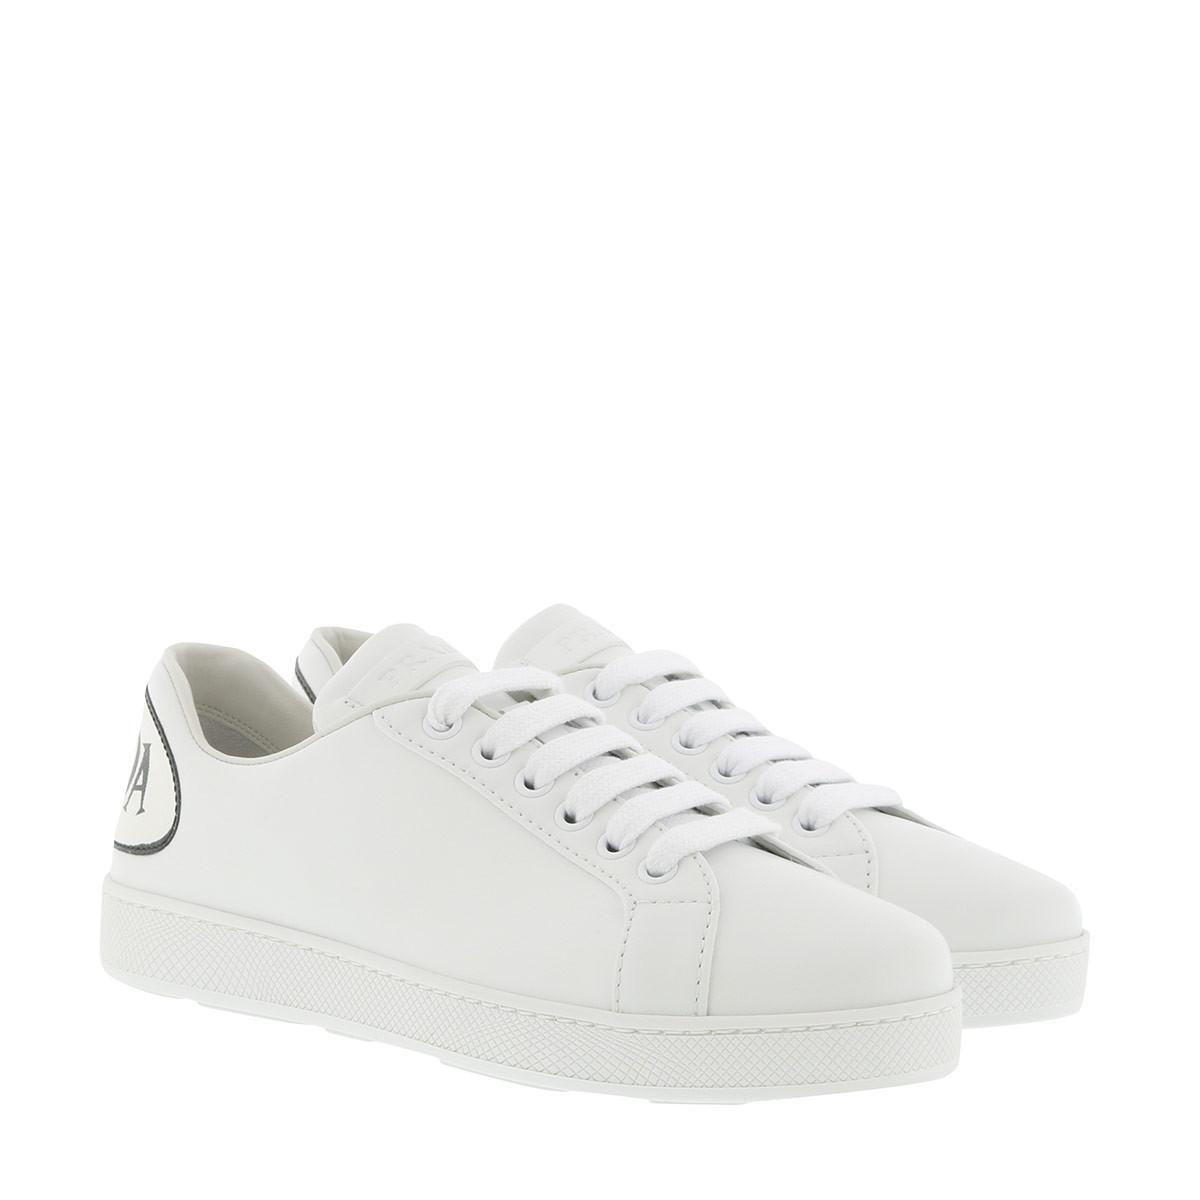 Sneakers - Speech Bubble Sneakers Mare - white - Sneakers for ladies Prada QtNDmIFed